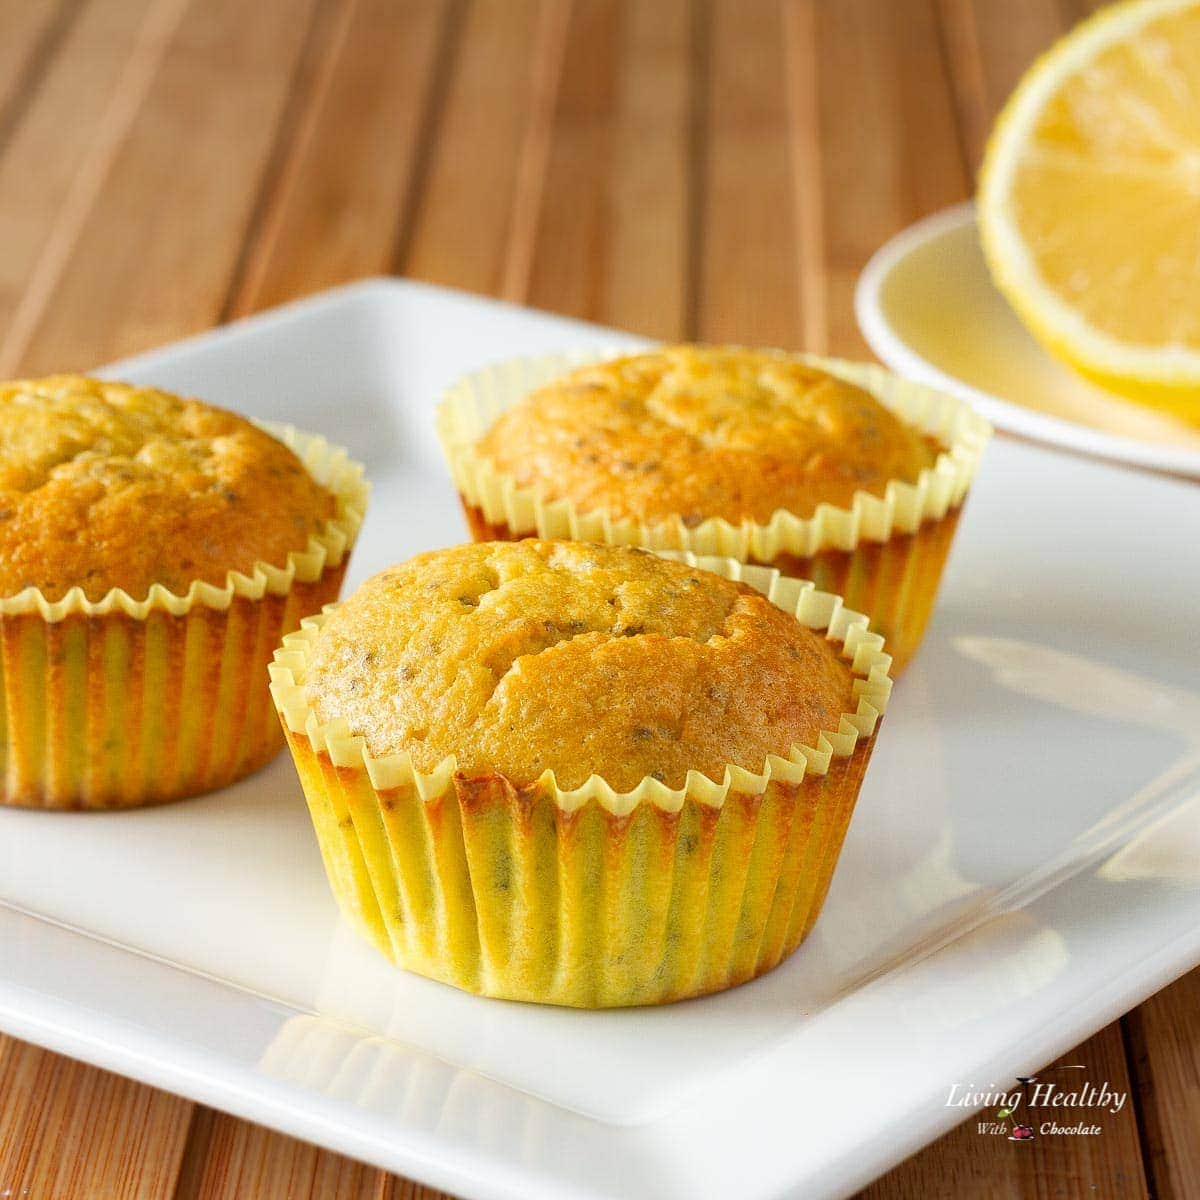 Paleo Lemon Chia Seed Muffins (low-carb, nut-free, dairy-free, grain-free, gluten-free, refined sugar-free